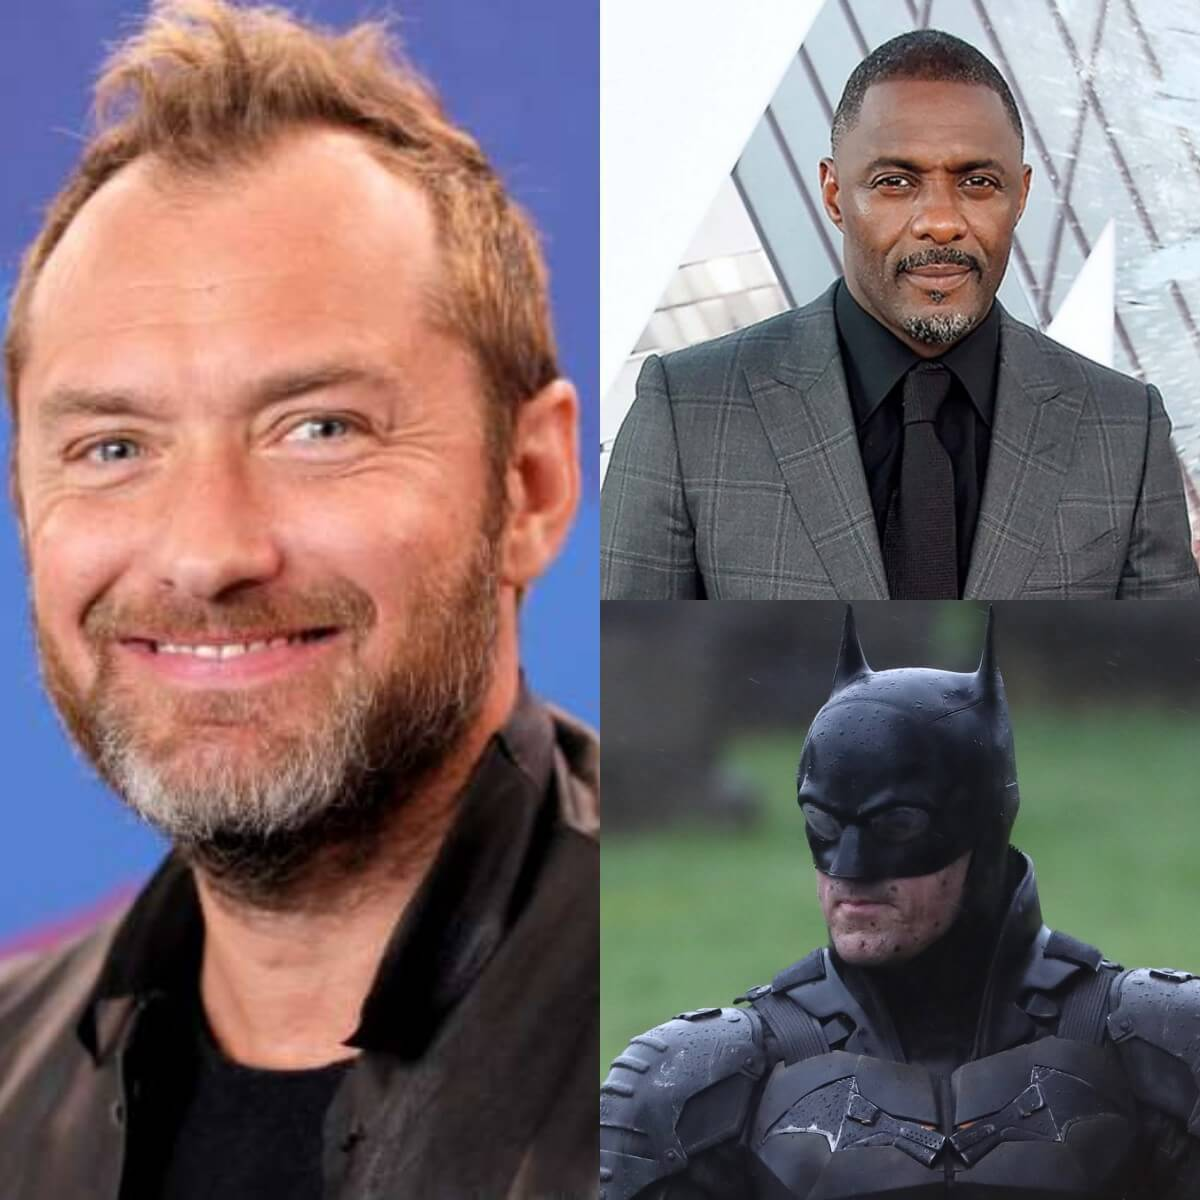 Jude Law To Play Captain Hook For Disney, Idris Elba Teases 'Luther' Movie & 'The Batman' Focuses On Bruce & Alfred https://t.co/hFcUJmoBsO #Movies #AndySerkis https://t.co/GuUrvDSSsV